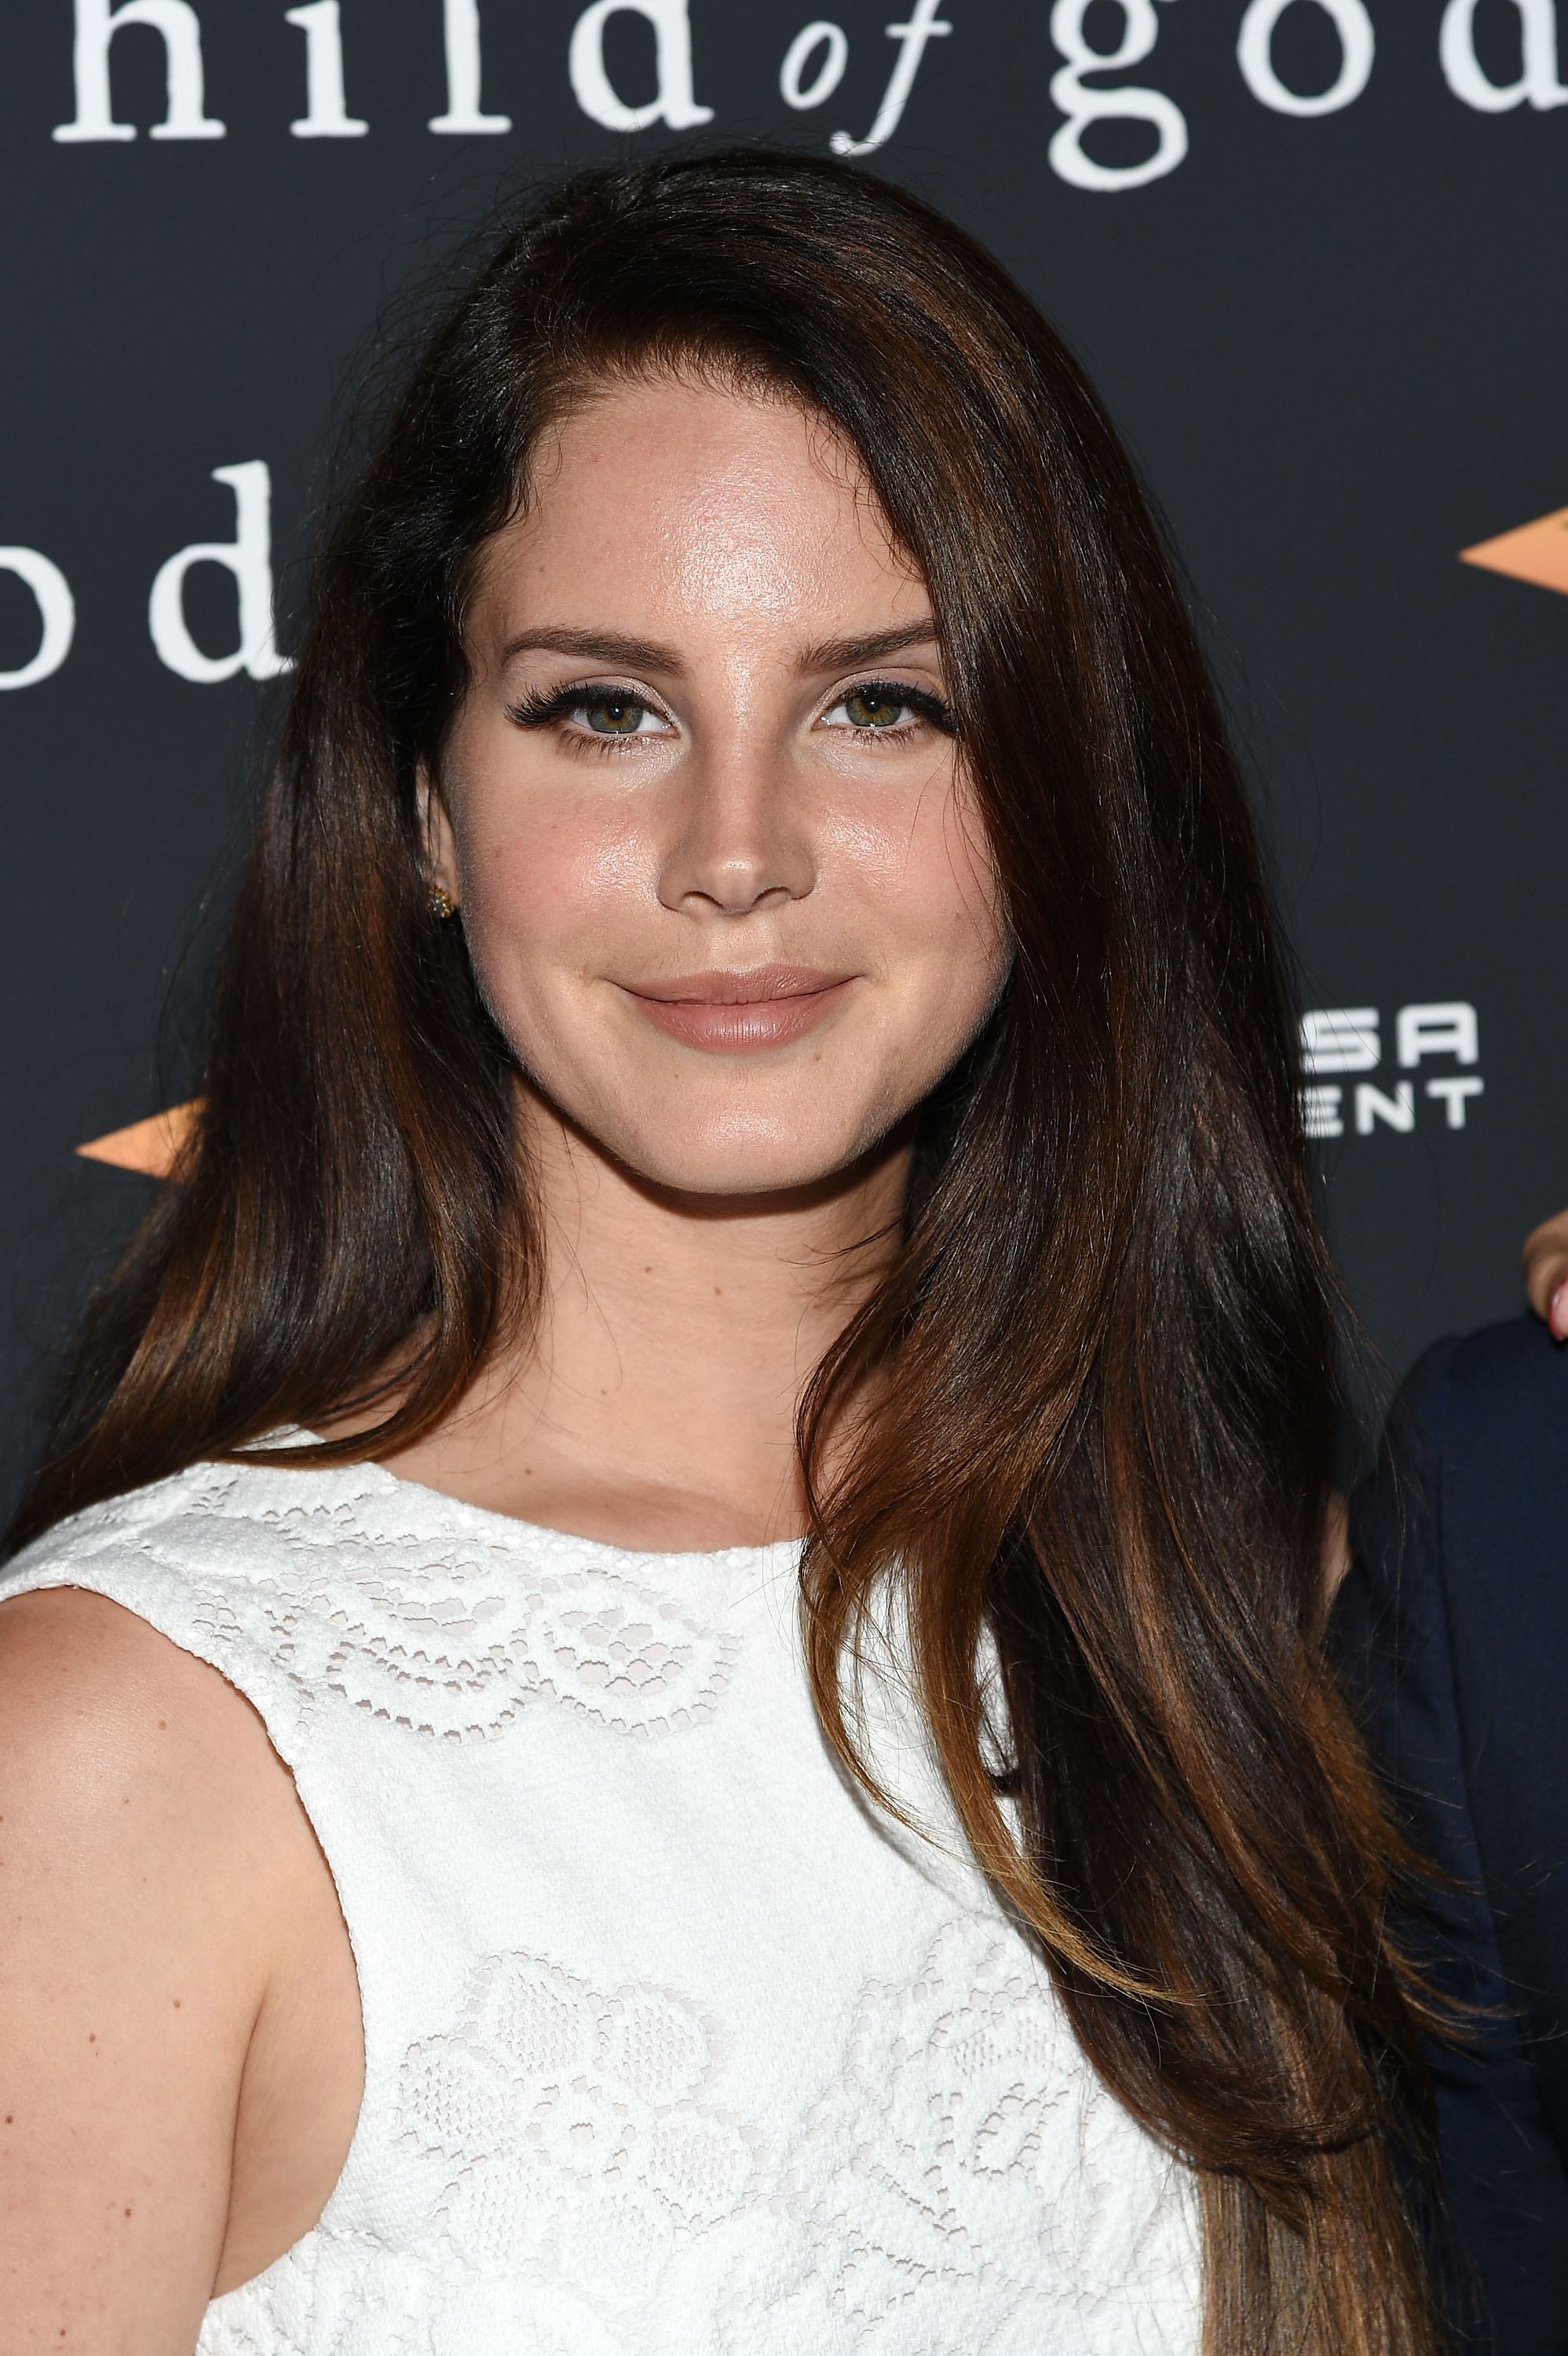 Lana Del Rey S New Song Big Eyes Teaser Is Hauntingly Beautiful Classic Lana Video